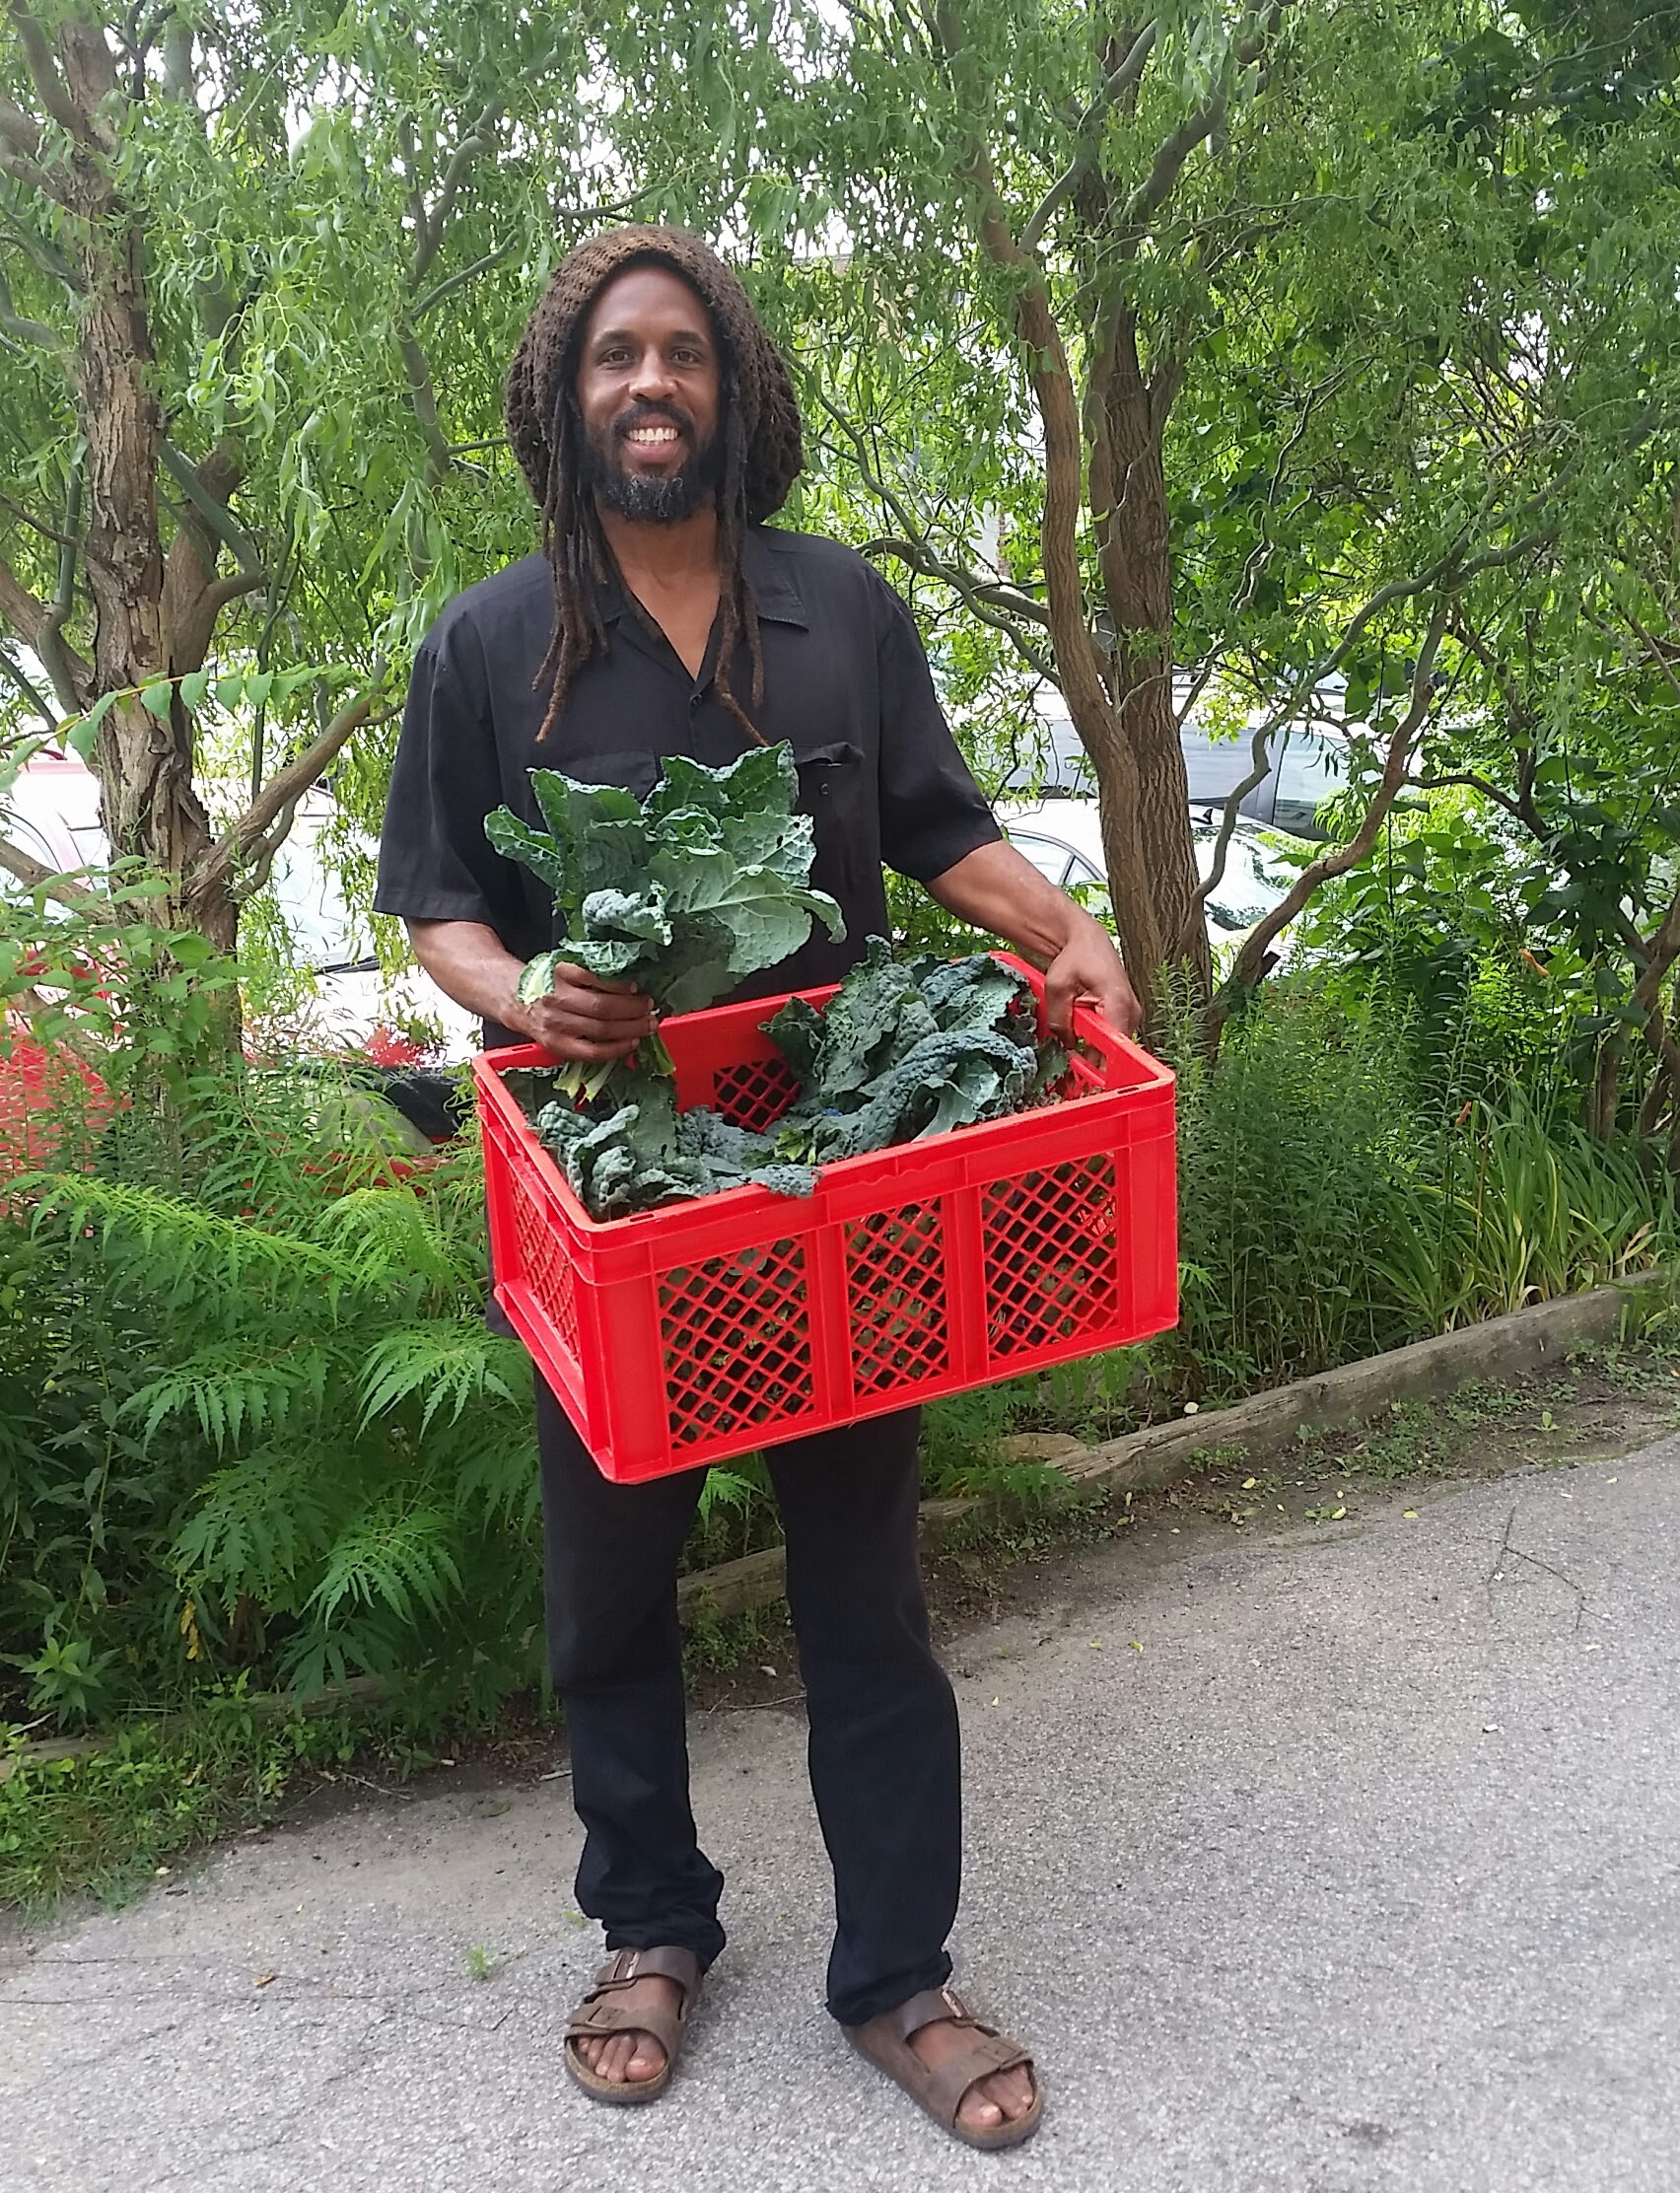 Shabaka standing tall and smiling with beard, dreadlocks, and a crate of crisp kale